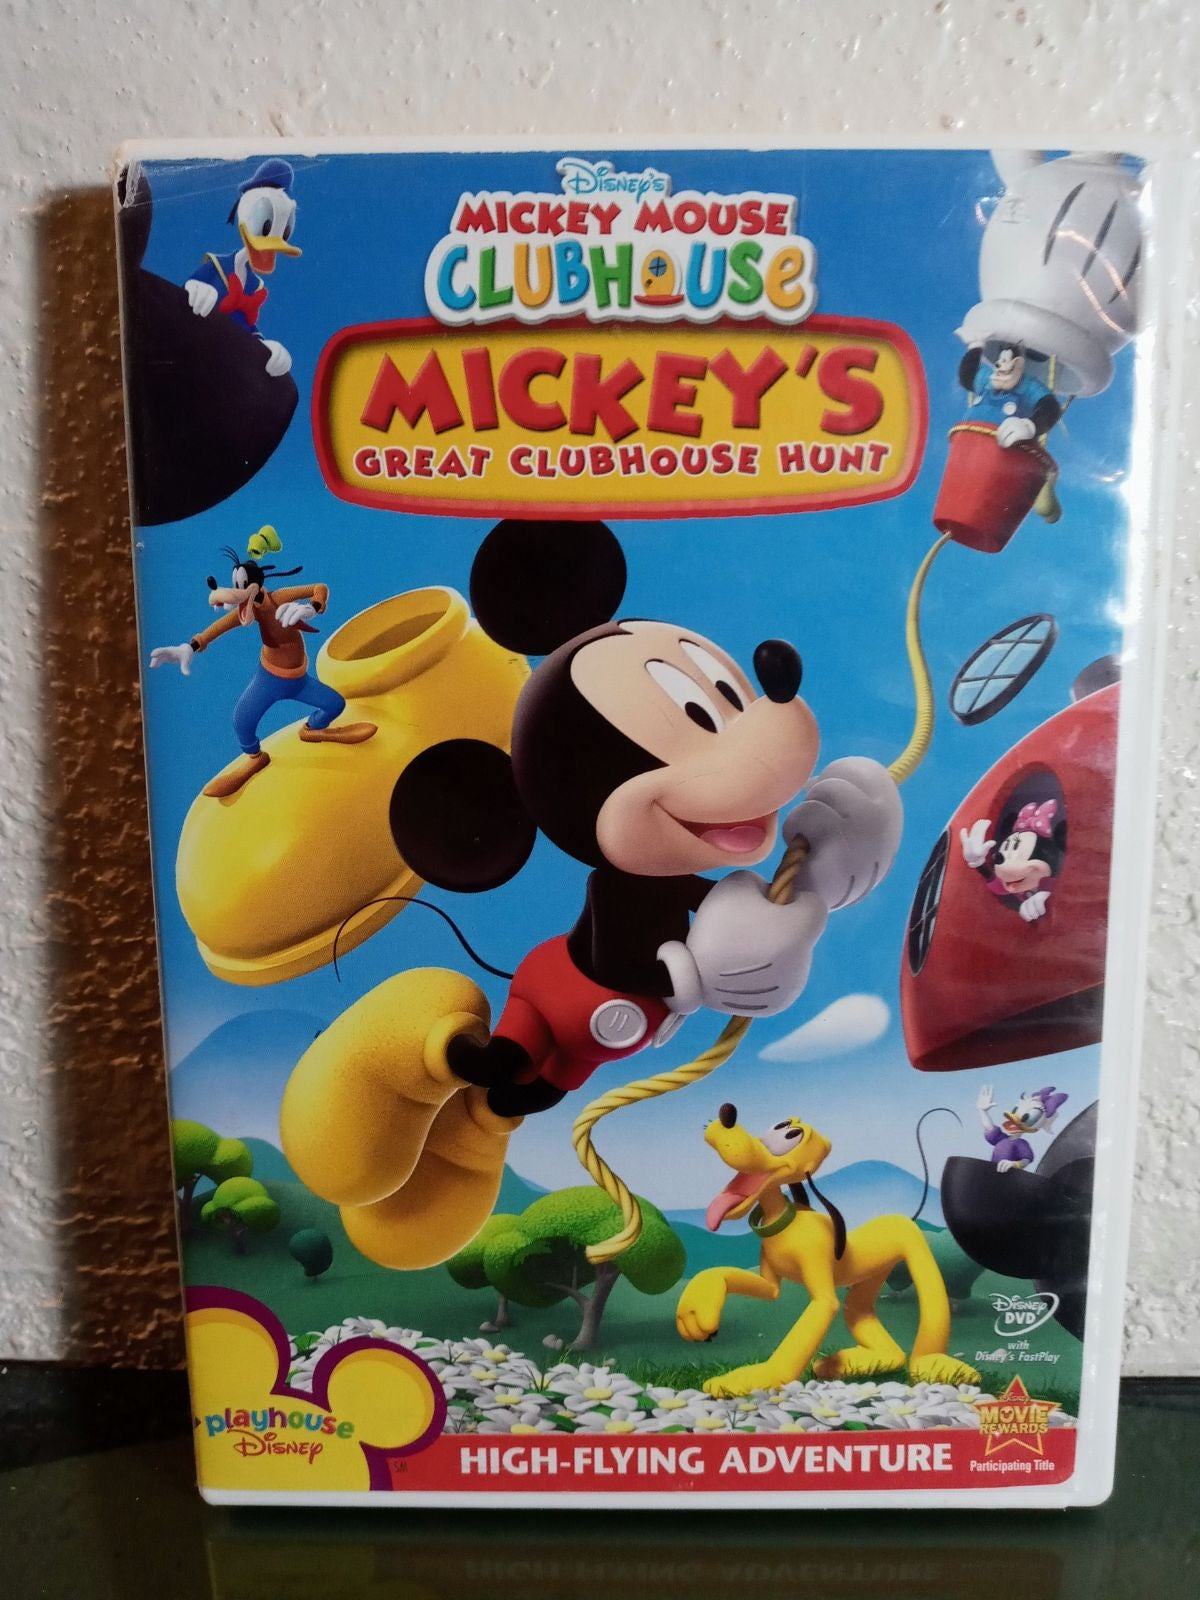 Mickey Mouse Clubhouse: Mickey's Great C